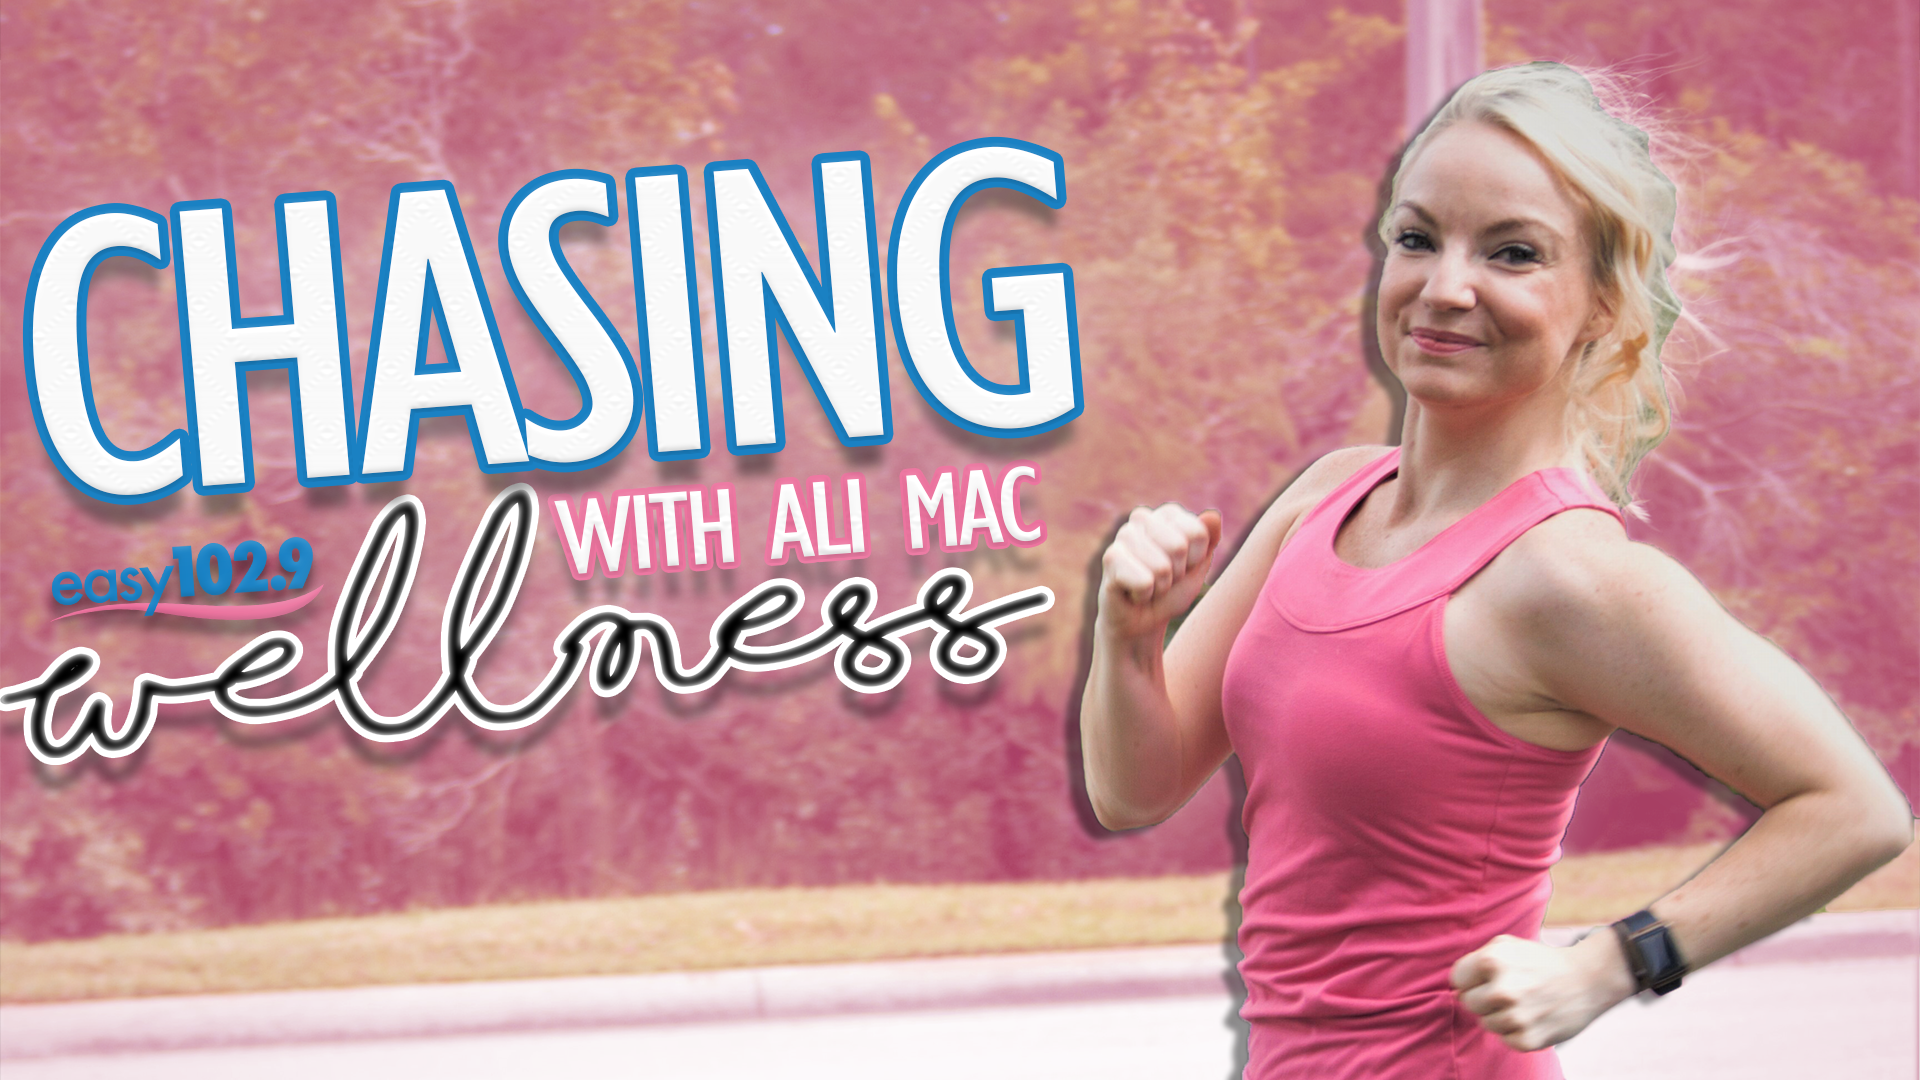 Ali Mac Is Chasing Wellness With You!